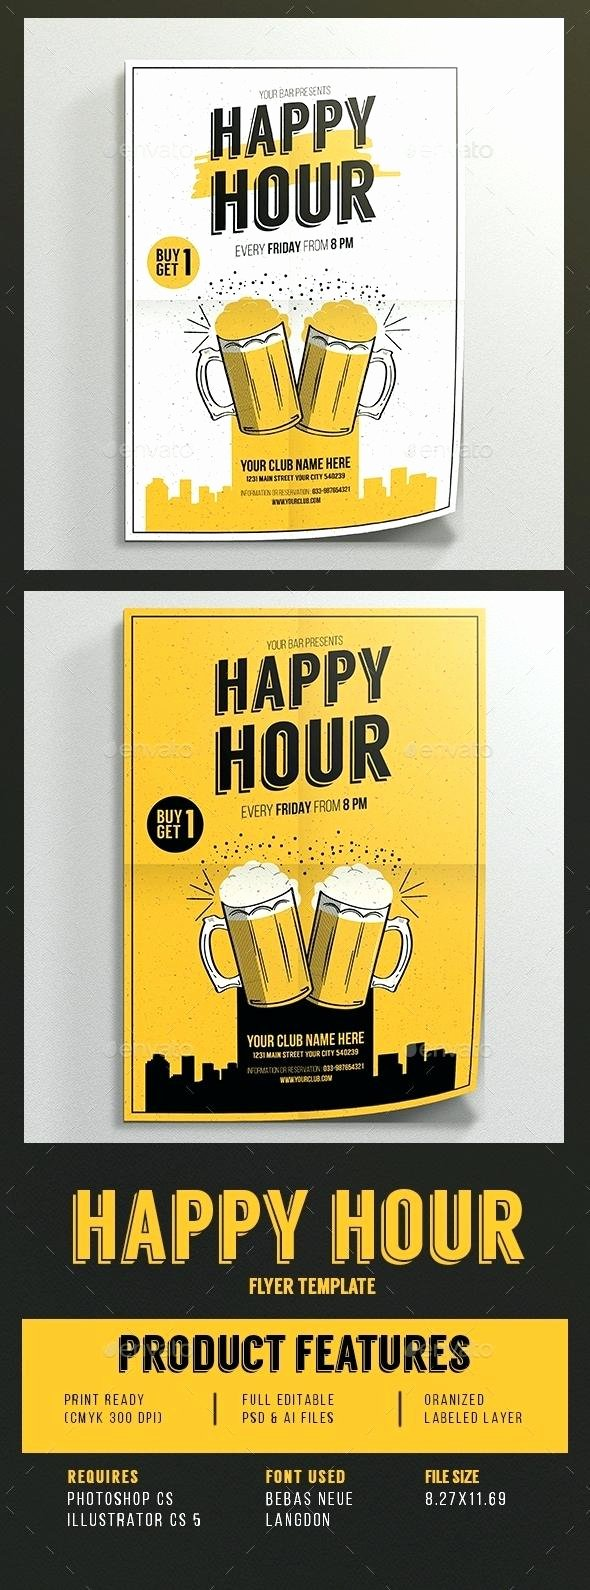 Beer Can Design Template Awesome Koozie Template Vector Templates Station